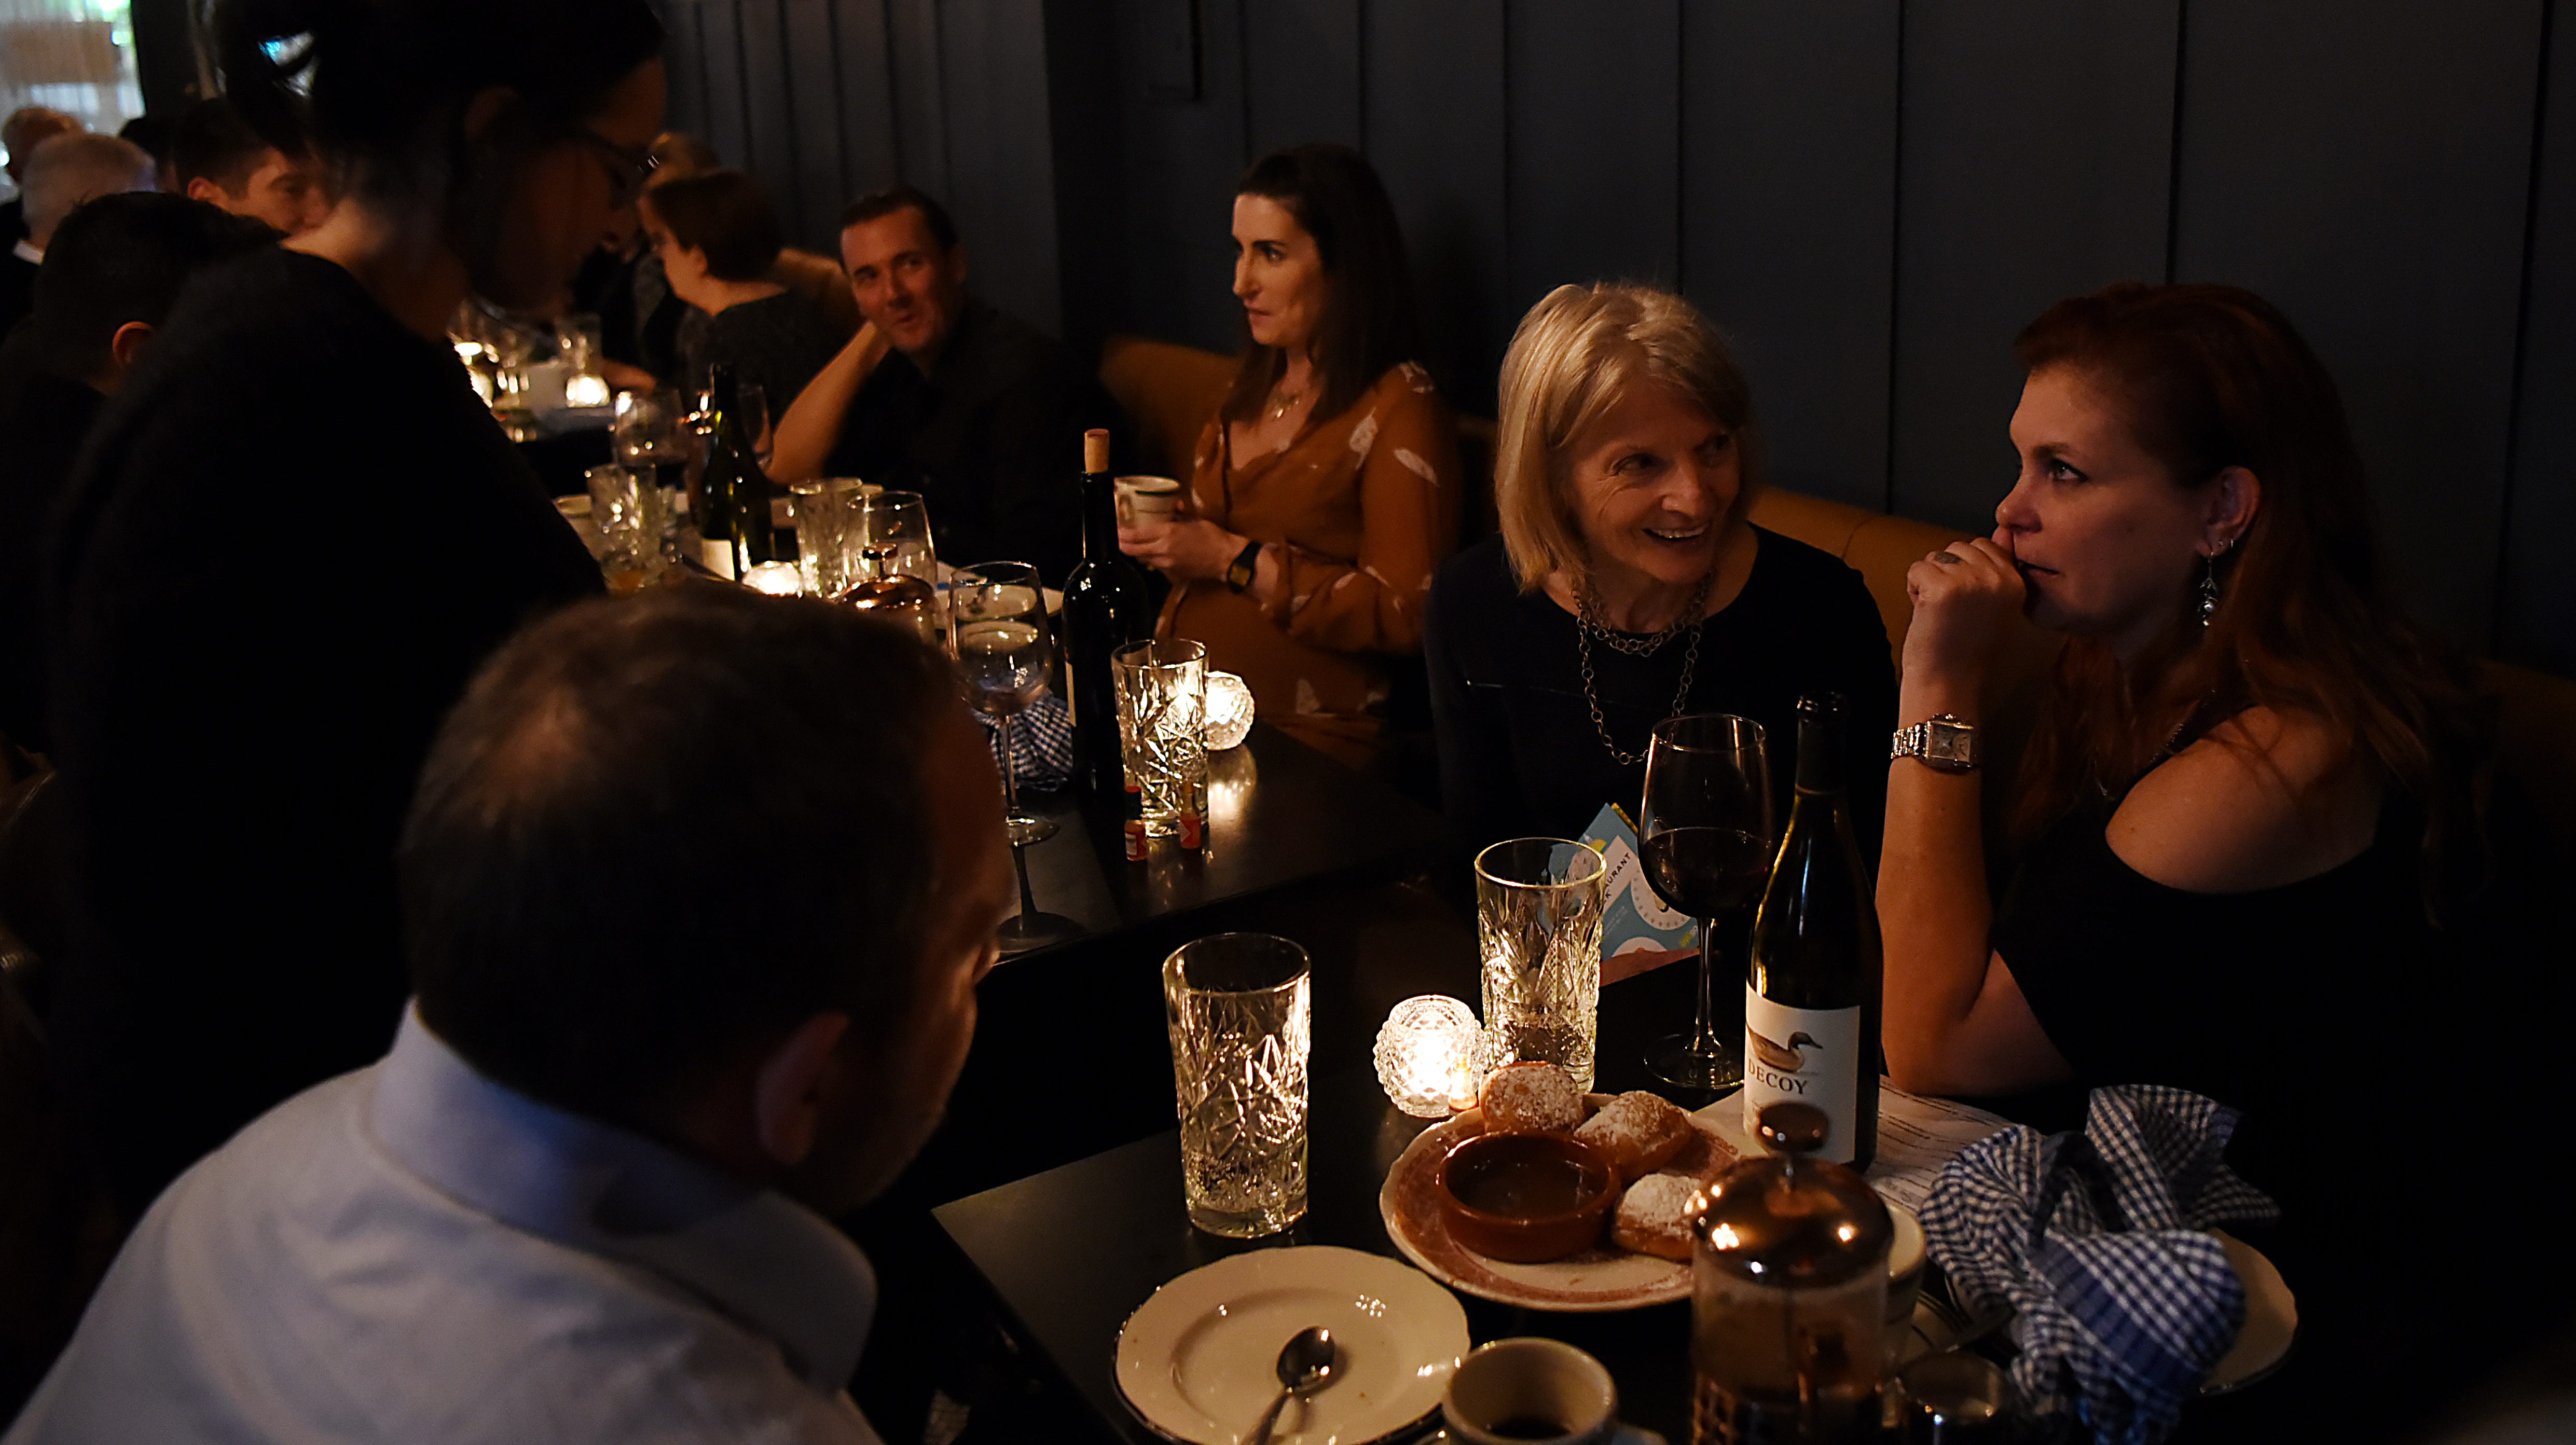 On Thursday an intimate group of food-lovers gathered at the recently opened No. 12 in Ridgewood for North Jersey Eat's first-ever Dinner with Esther.